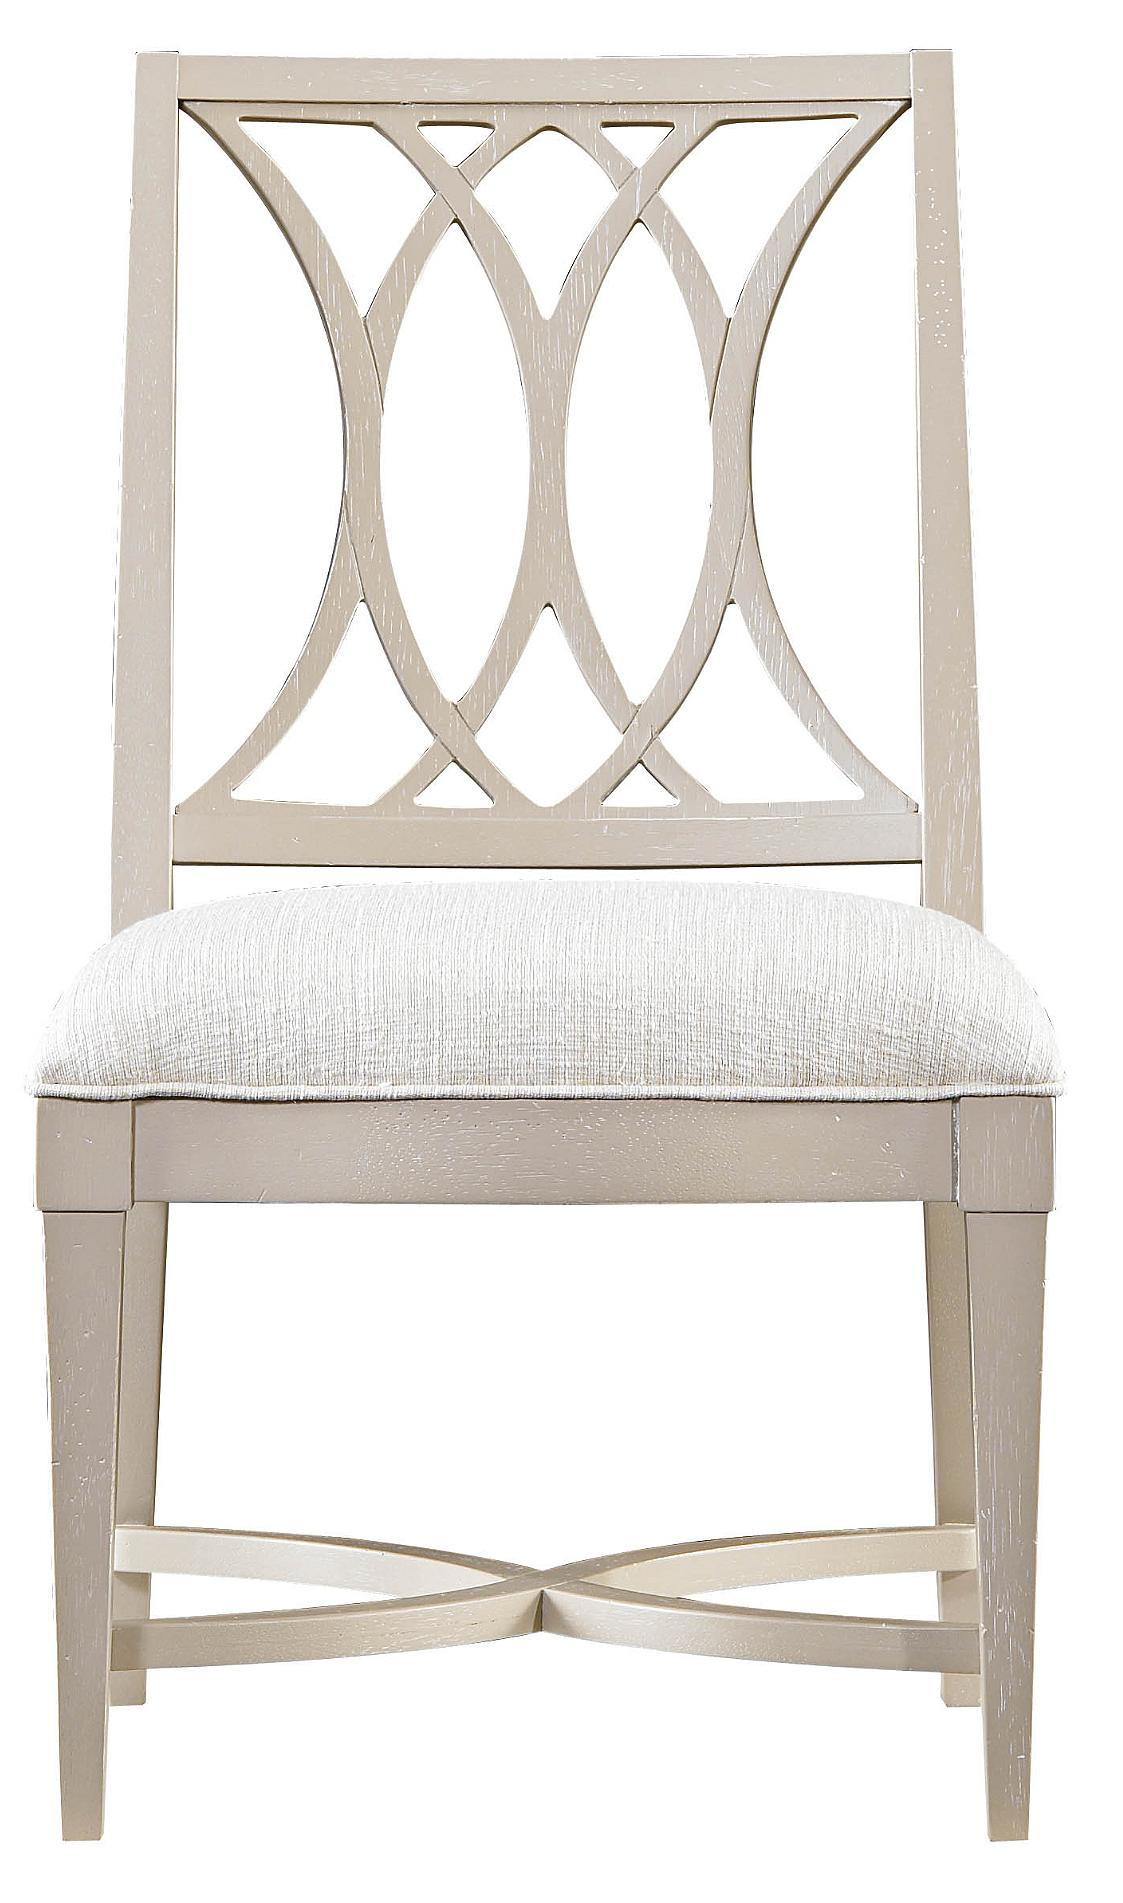 Stanley Furniture Coastal Living Resort Heritage Coast Side Chair - Item Number: 062-D1-60